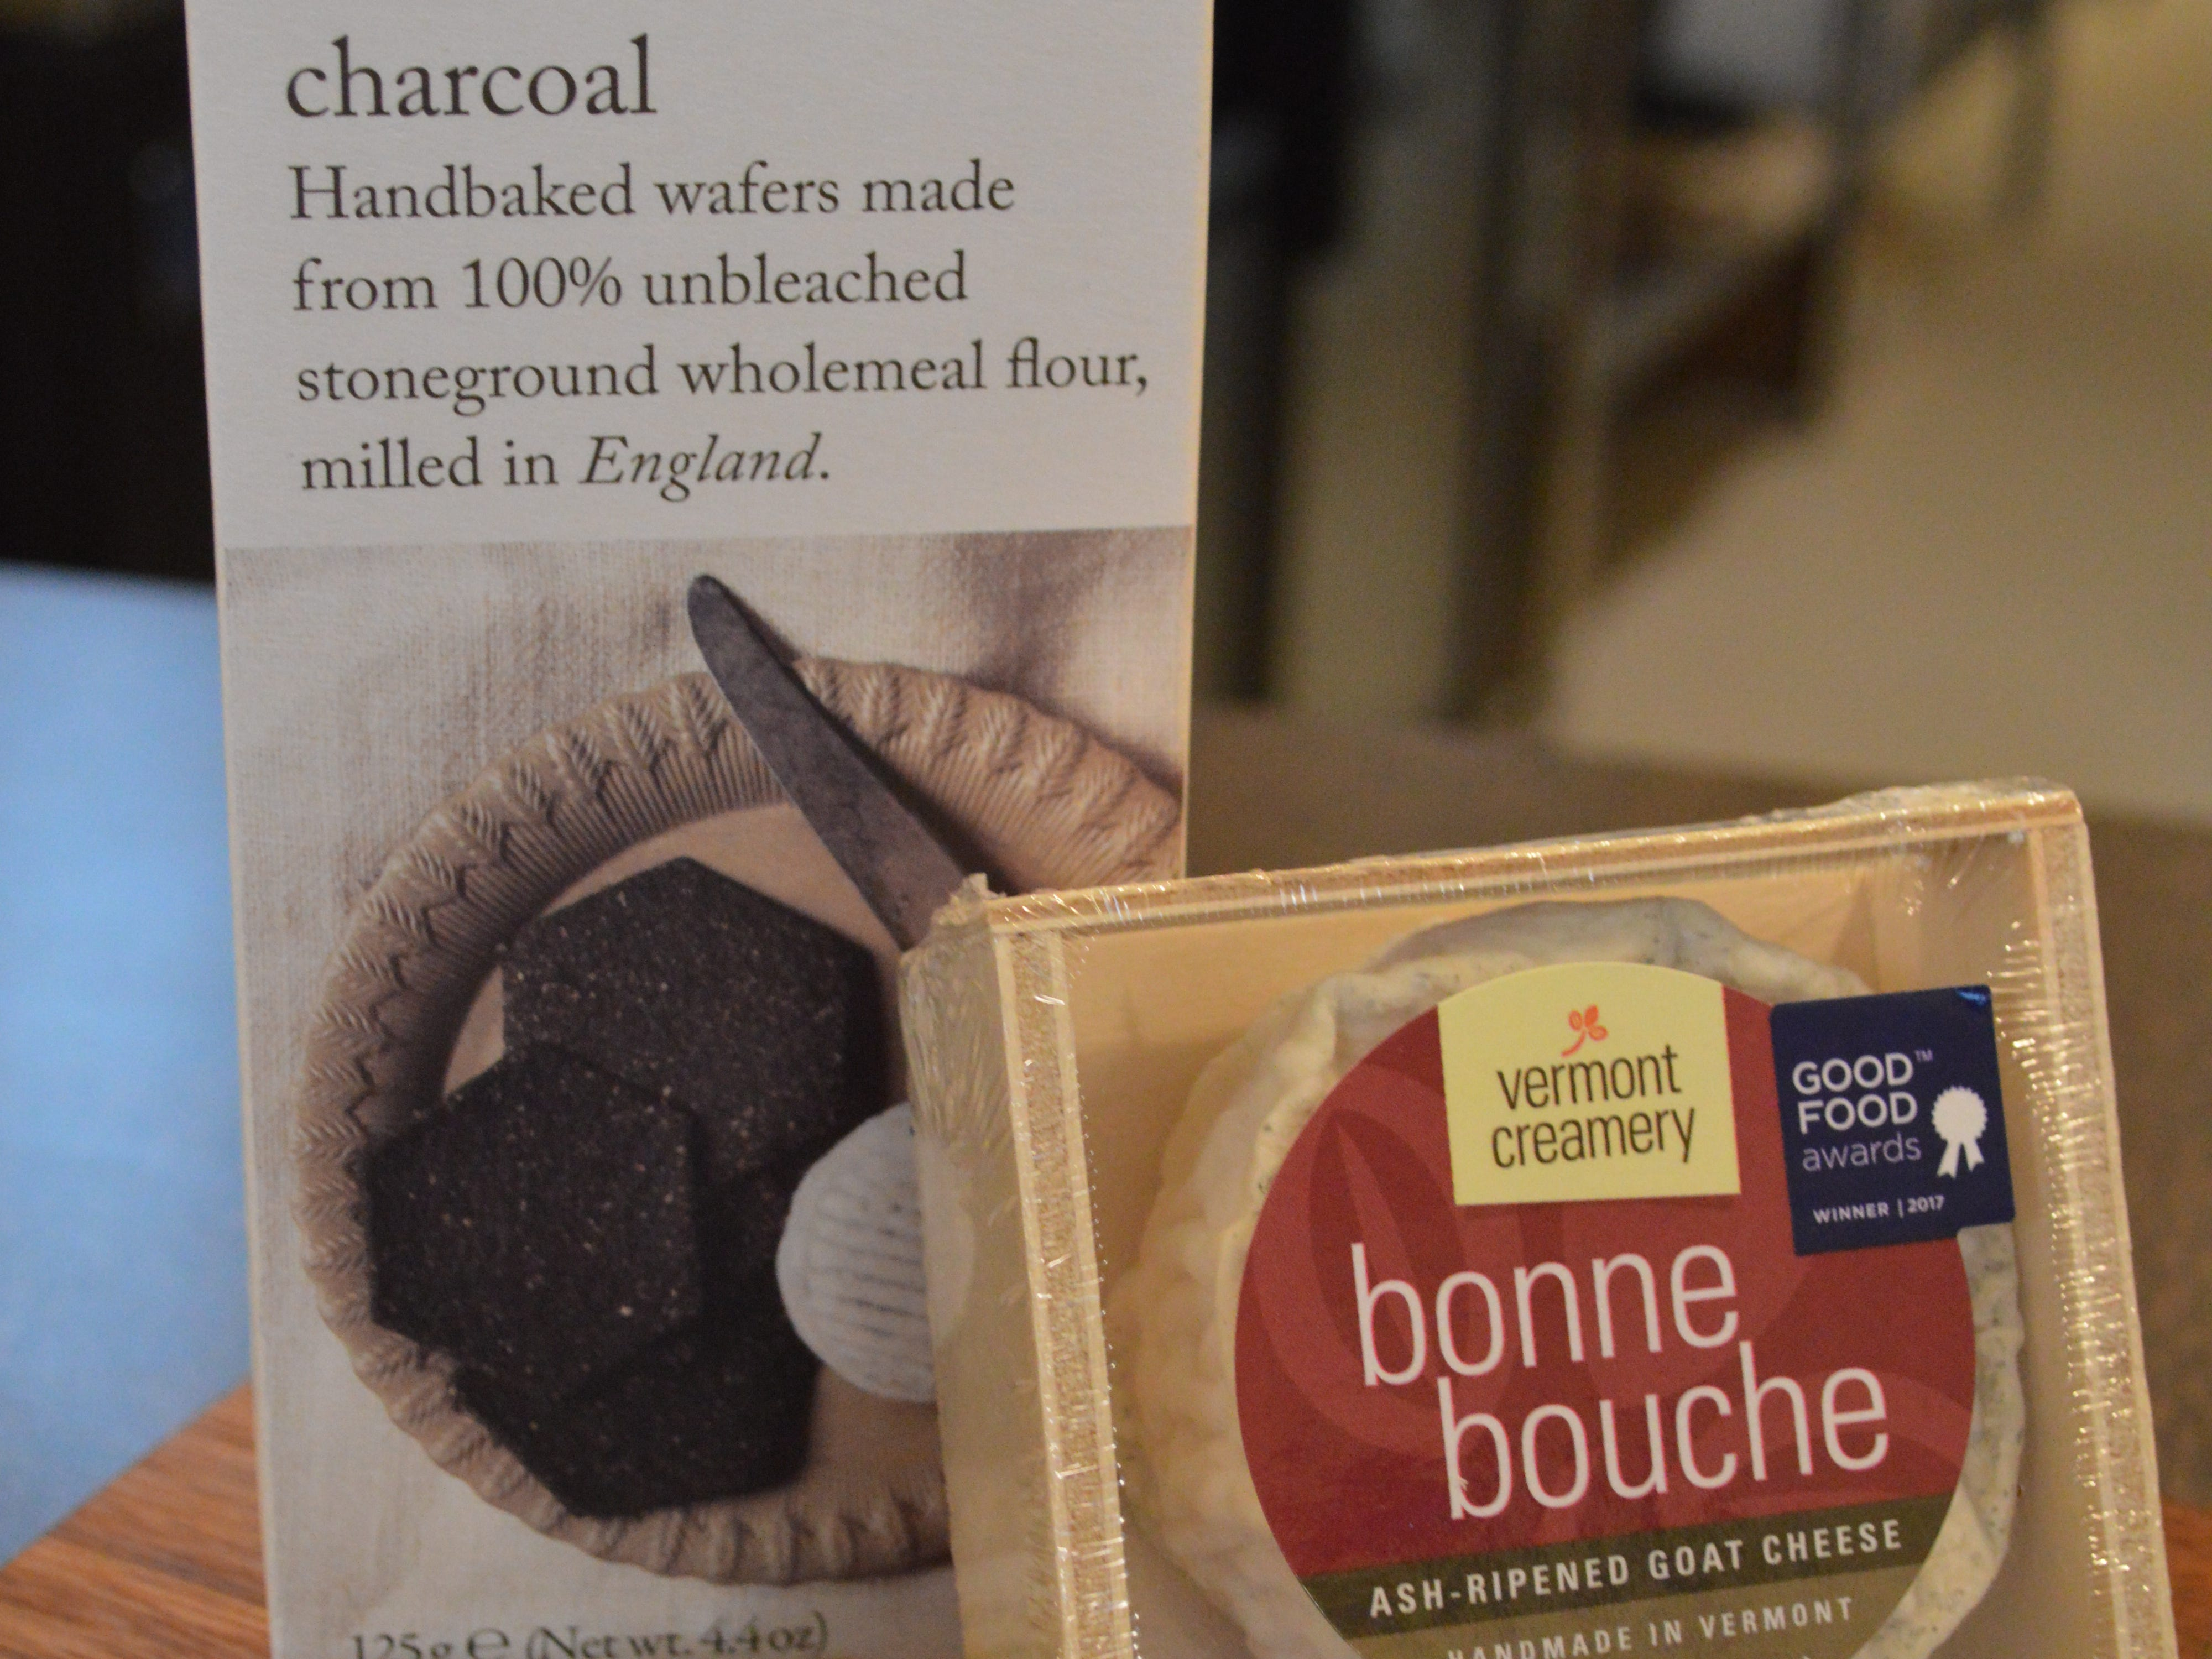 Pair Vermont Creamery'sBonne Bouche, a french-style goat's milk cheese, which has ash on the outside, with charcoal crackers.